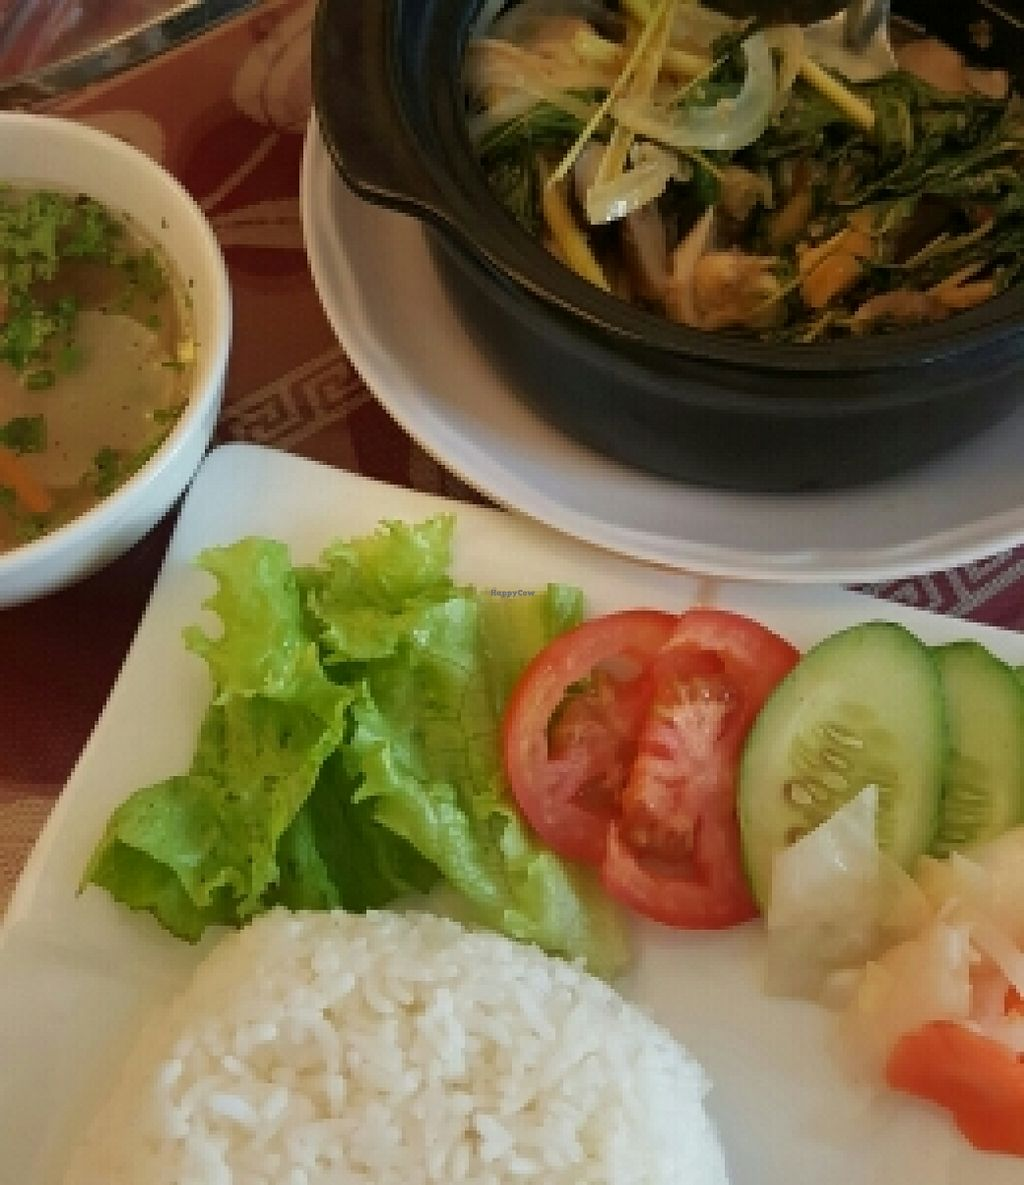 """Photo of CLOSED: Pho Nam Chay  by <a href=""""/members/profile/Refinnej"""">Refinnej</a> <br/>Com Thai Thap Cam: Mushroom and veggies stewed in Thai spices with lemongrass. Served with rice and soup <br/> November 4, 2015  - <a href='/contact/abuse/image/65378/123927'>Report</a>"""